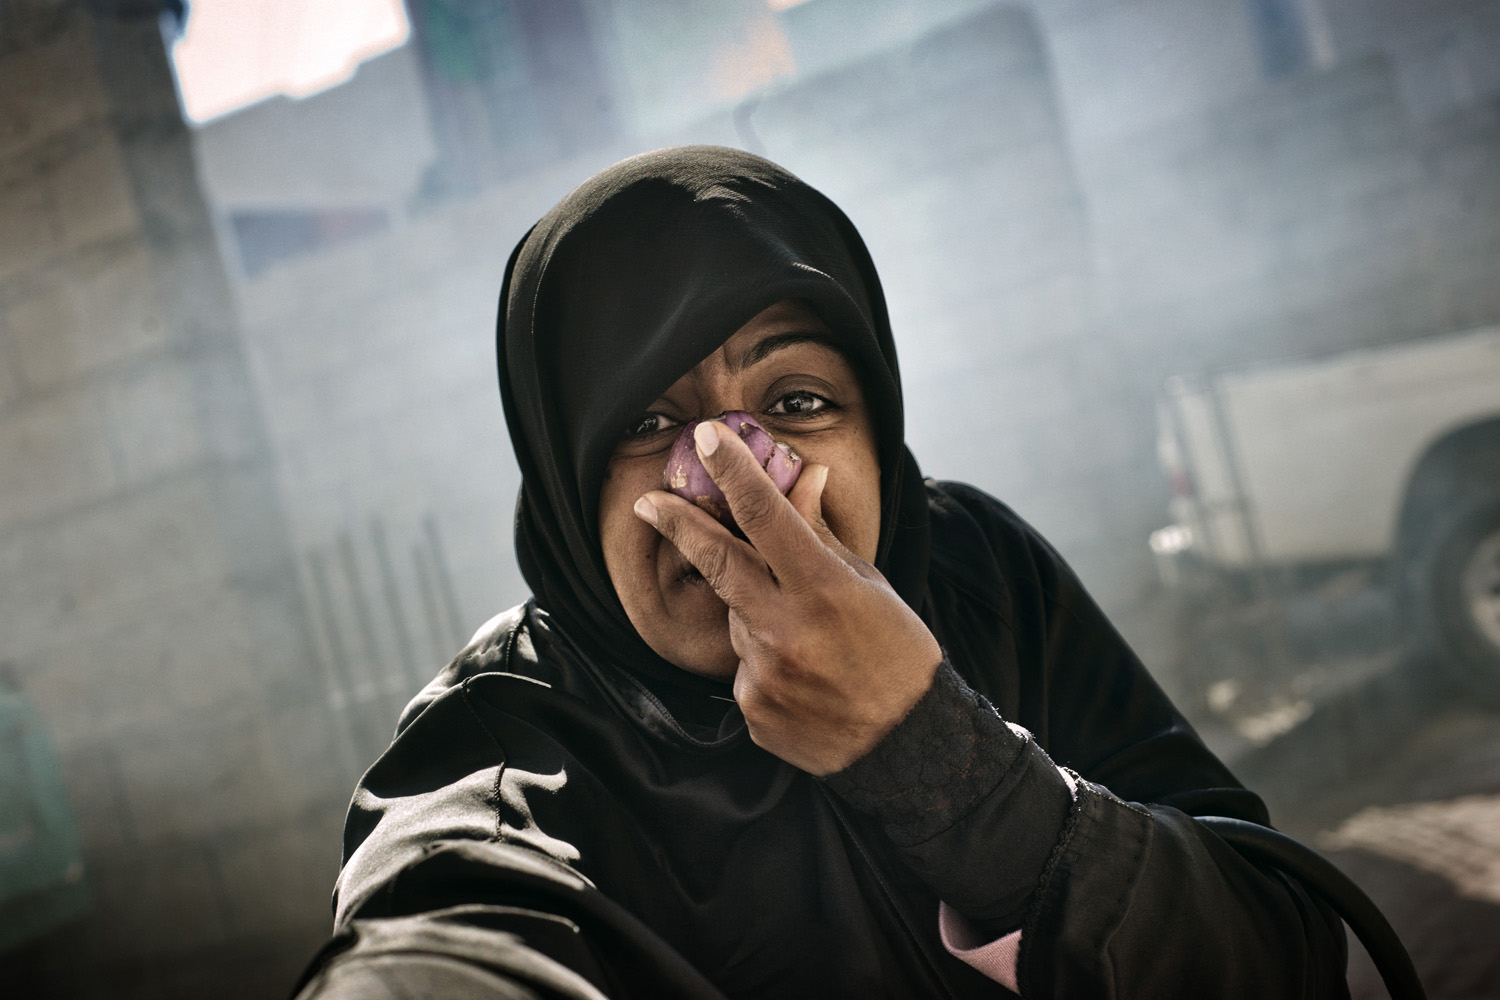 A protester passes out onions and garlic which battle the negative effects of the teargas sent by Bahraini forces in February, 2011.